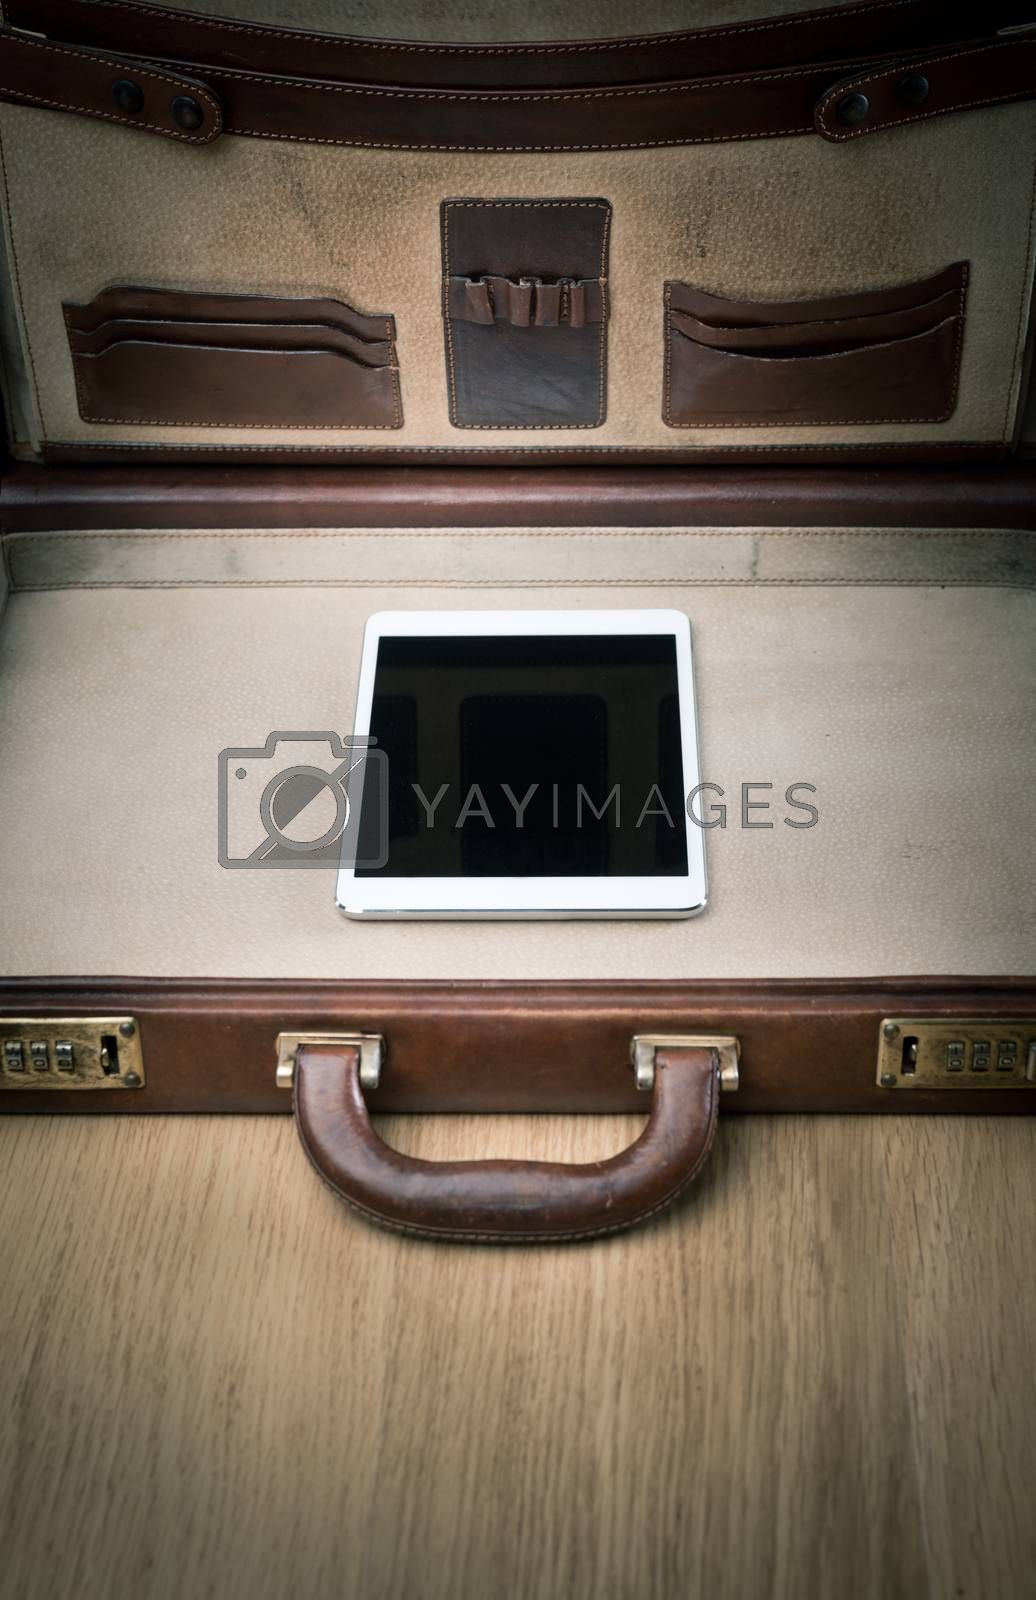 Open leather brefcase on parquet with only digital tablet inside.